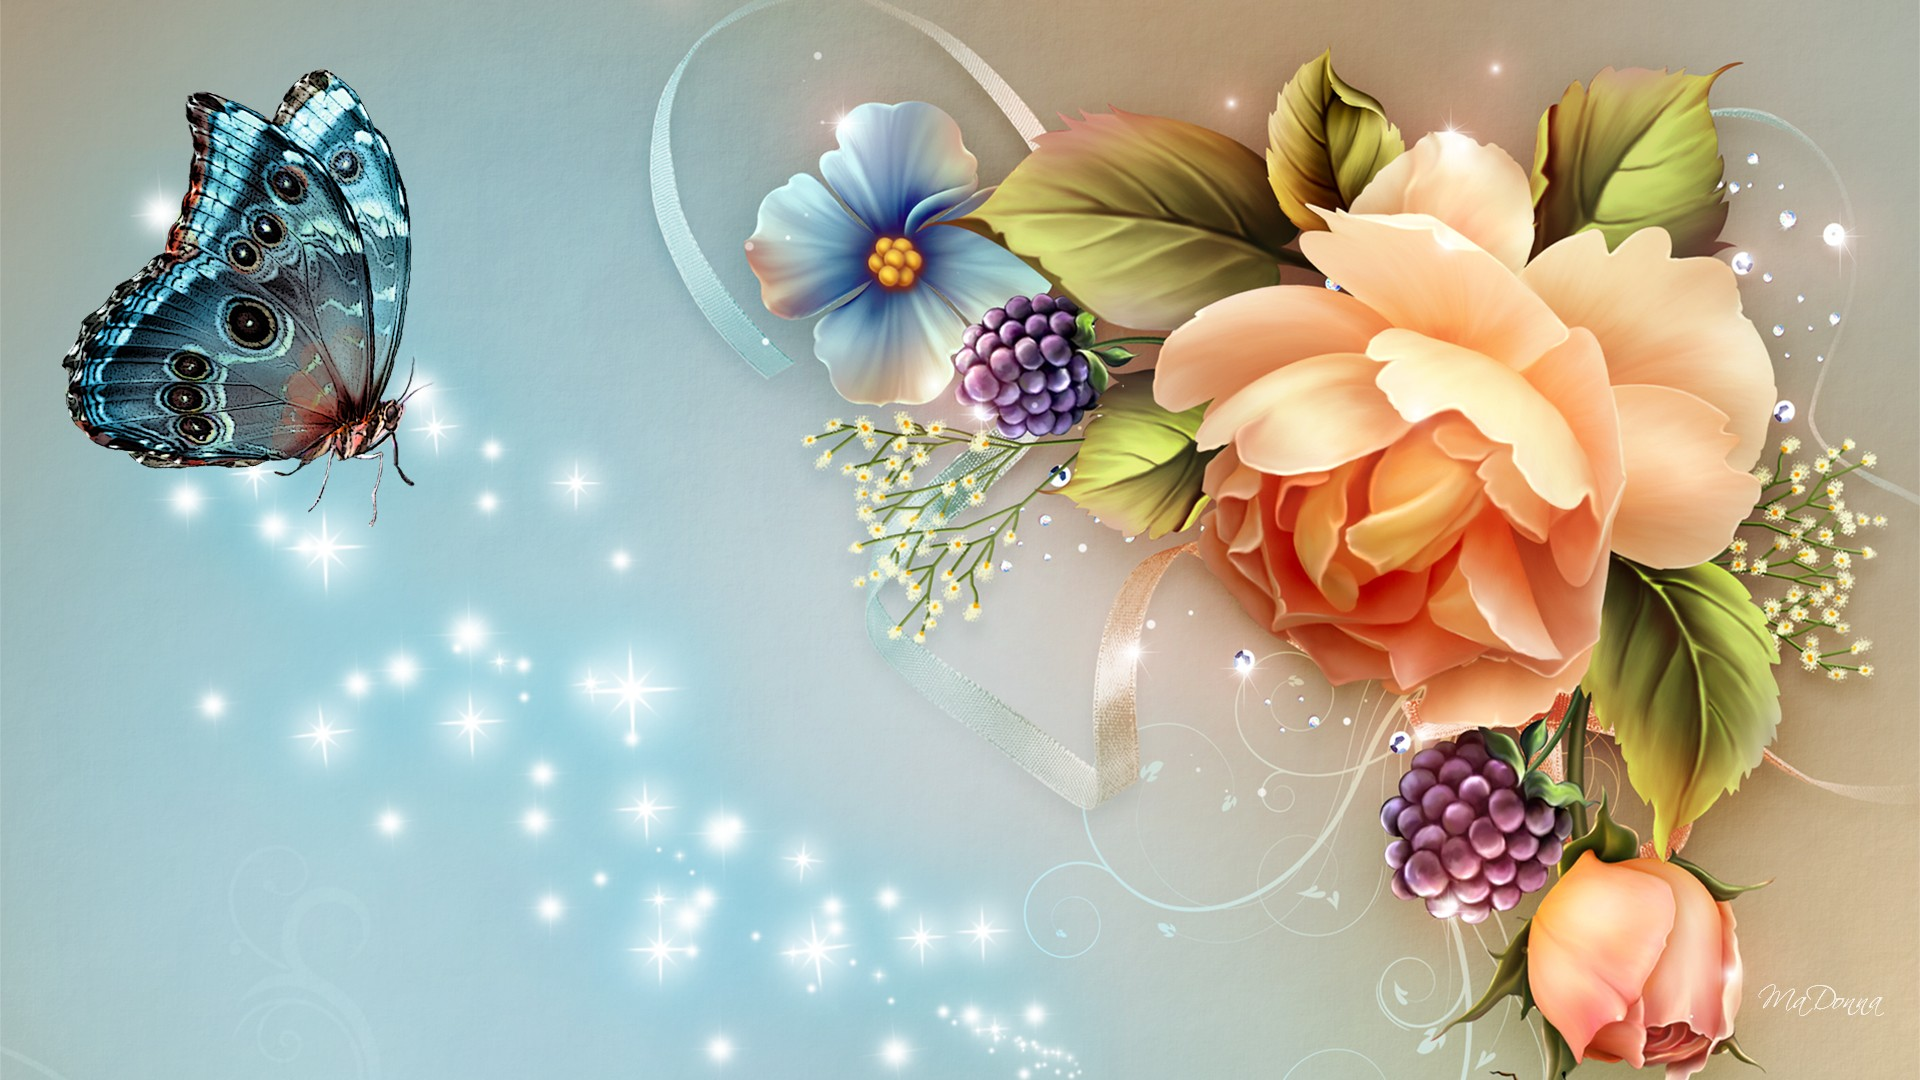 Beautiful Wallpaper Free Download   1920x1080